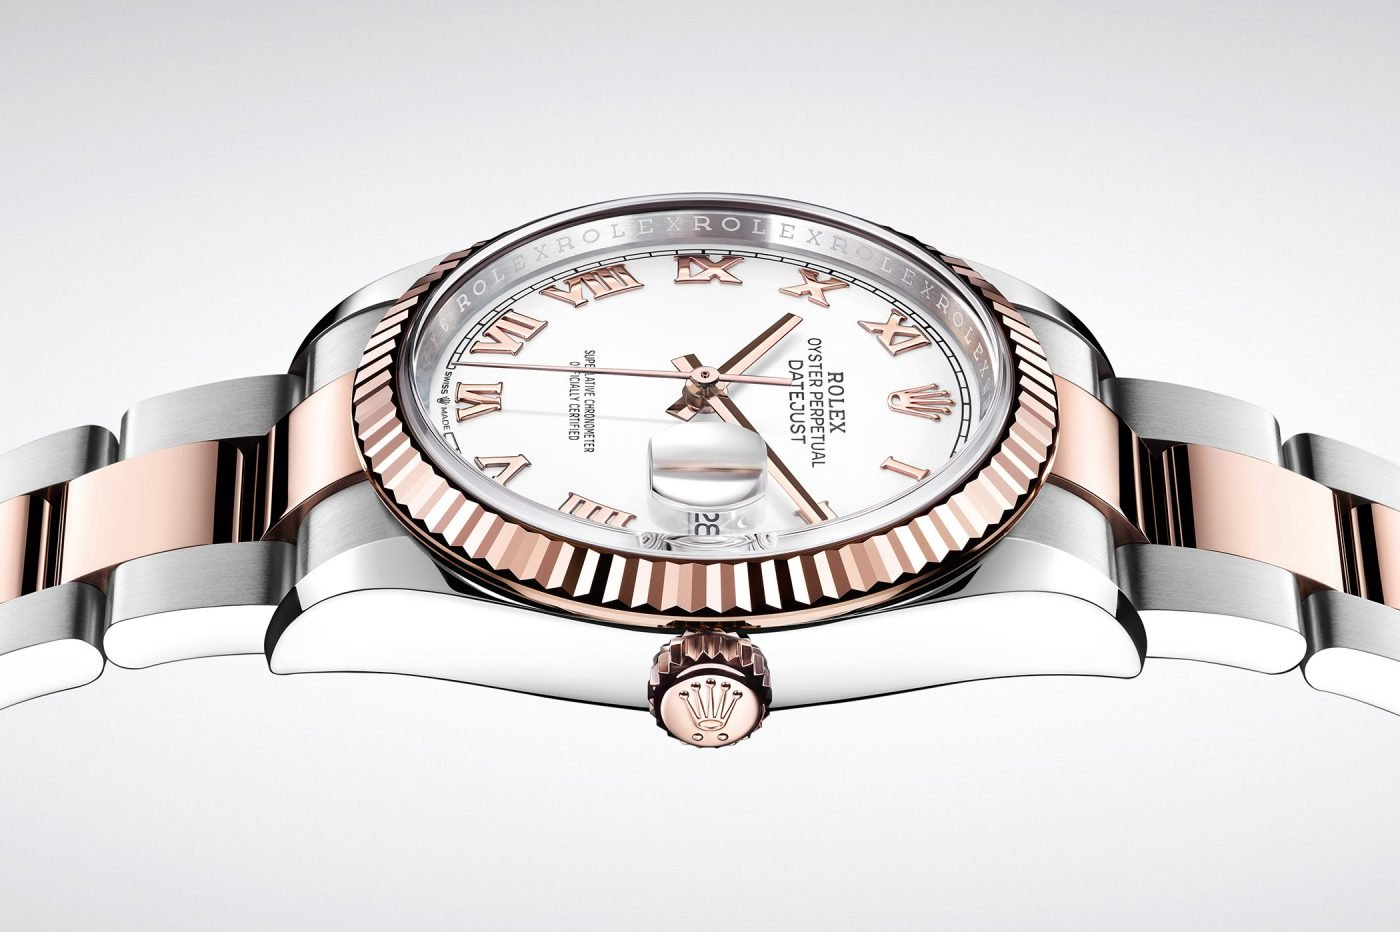 Rolex Oyster Perpetual Datejust 36 [cena]